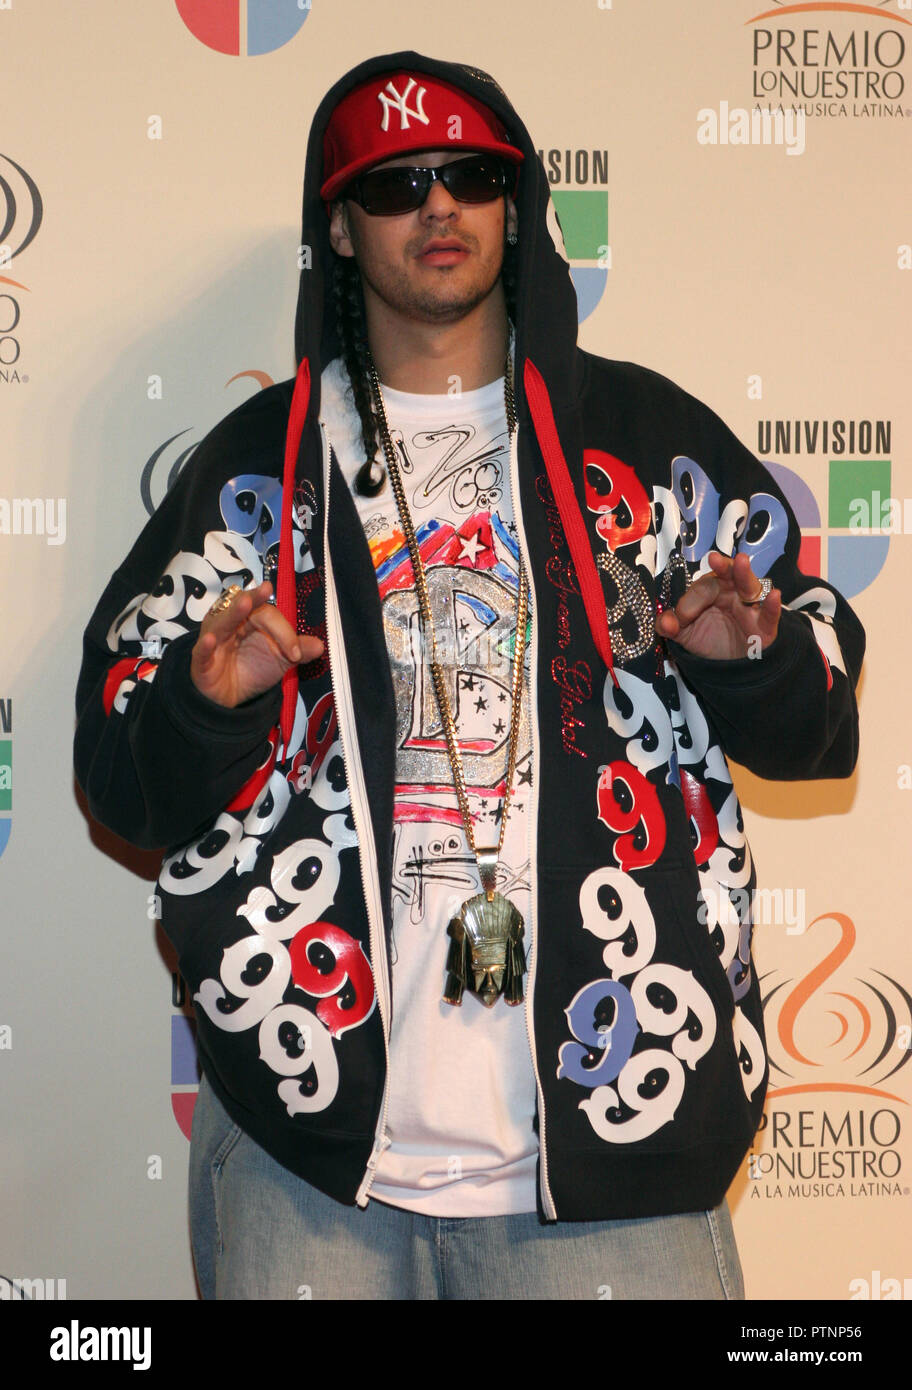 Don Dinero  arrives on the red carpet prior to the 2007 Premios Lo Nuestro award show at the American Airlines Arena in Miami, on February  22, 2007. - Stock Image